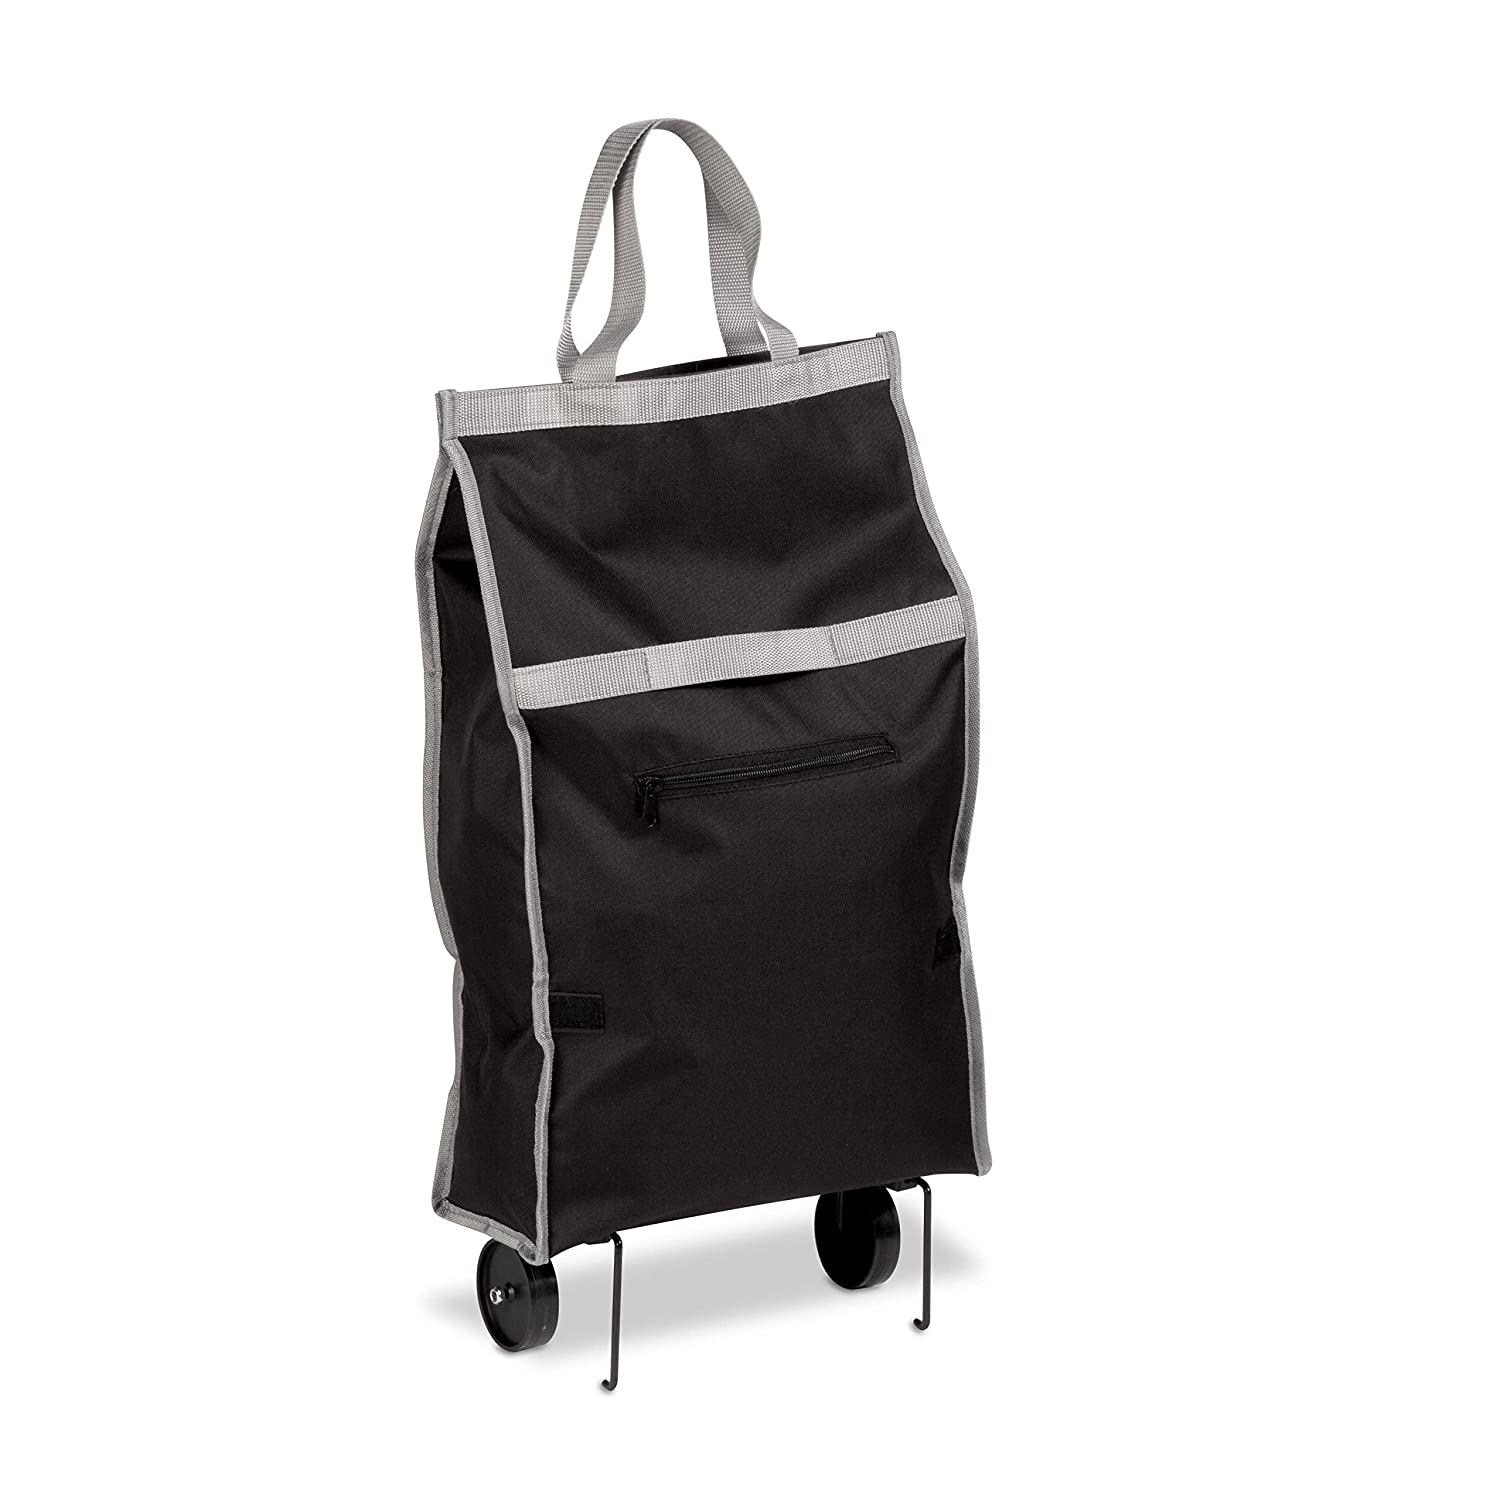 Amazon.com: Honey-Can-Do CRT-03933 Large Rolling Knapsack Bag Cart with Tri-Wheels for Steps, Holds up to 40-Pounds, Black: Home & Kitchen